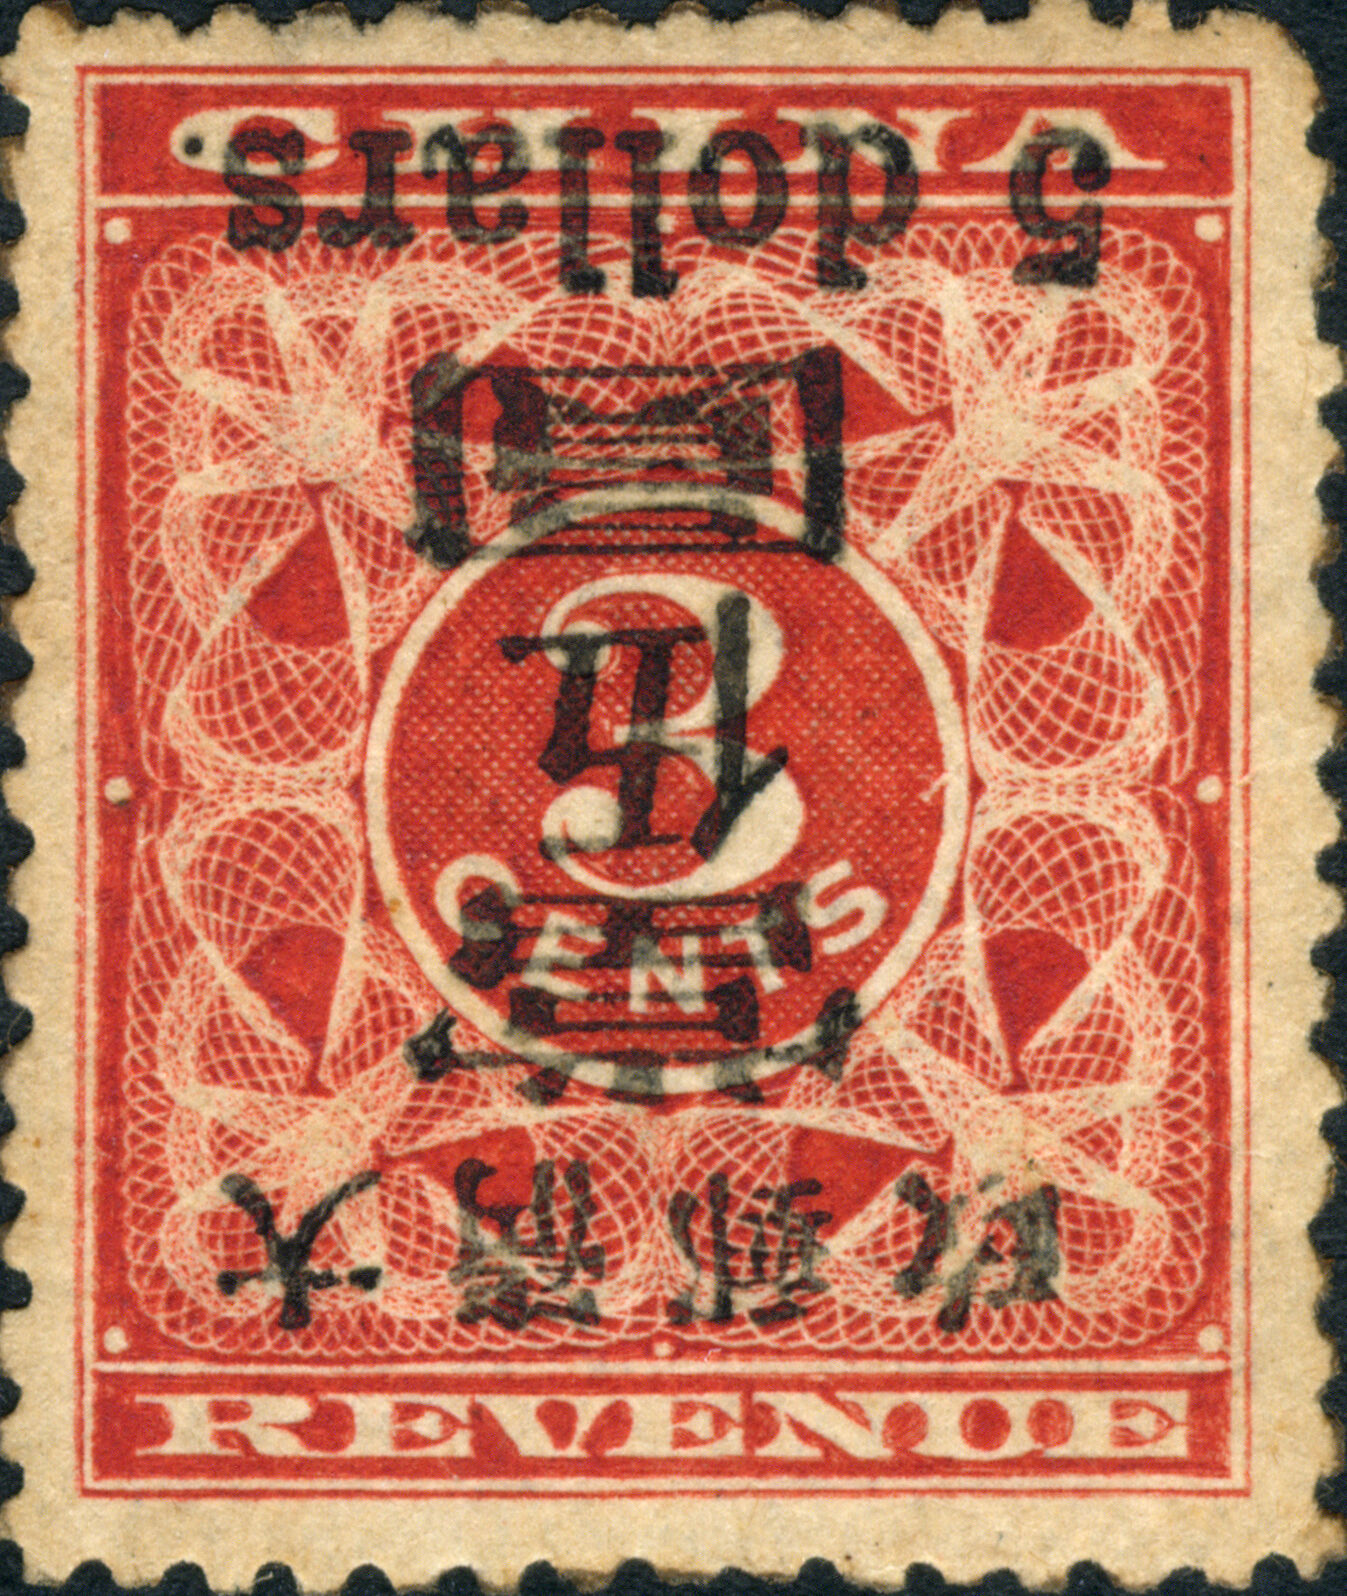 Imperial China stamps and covers